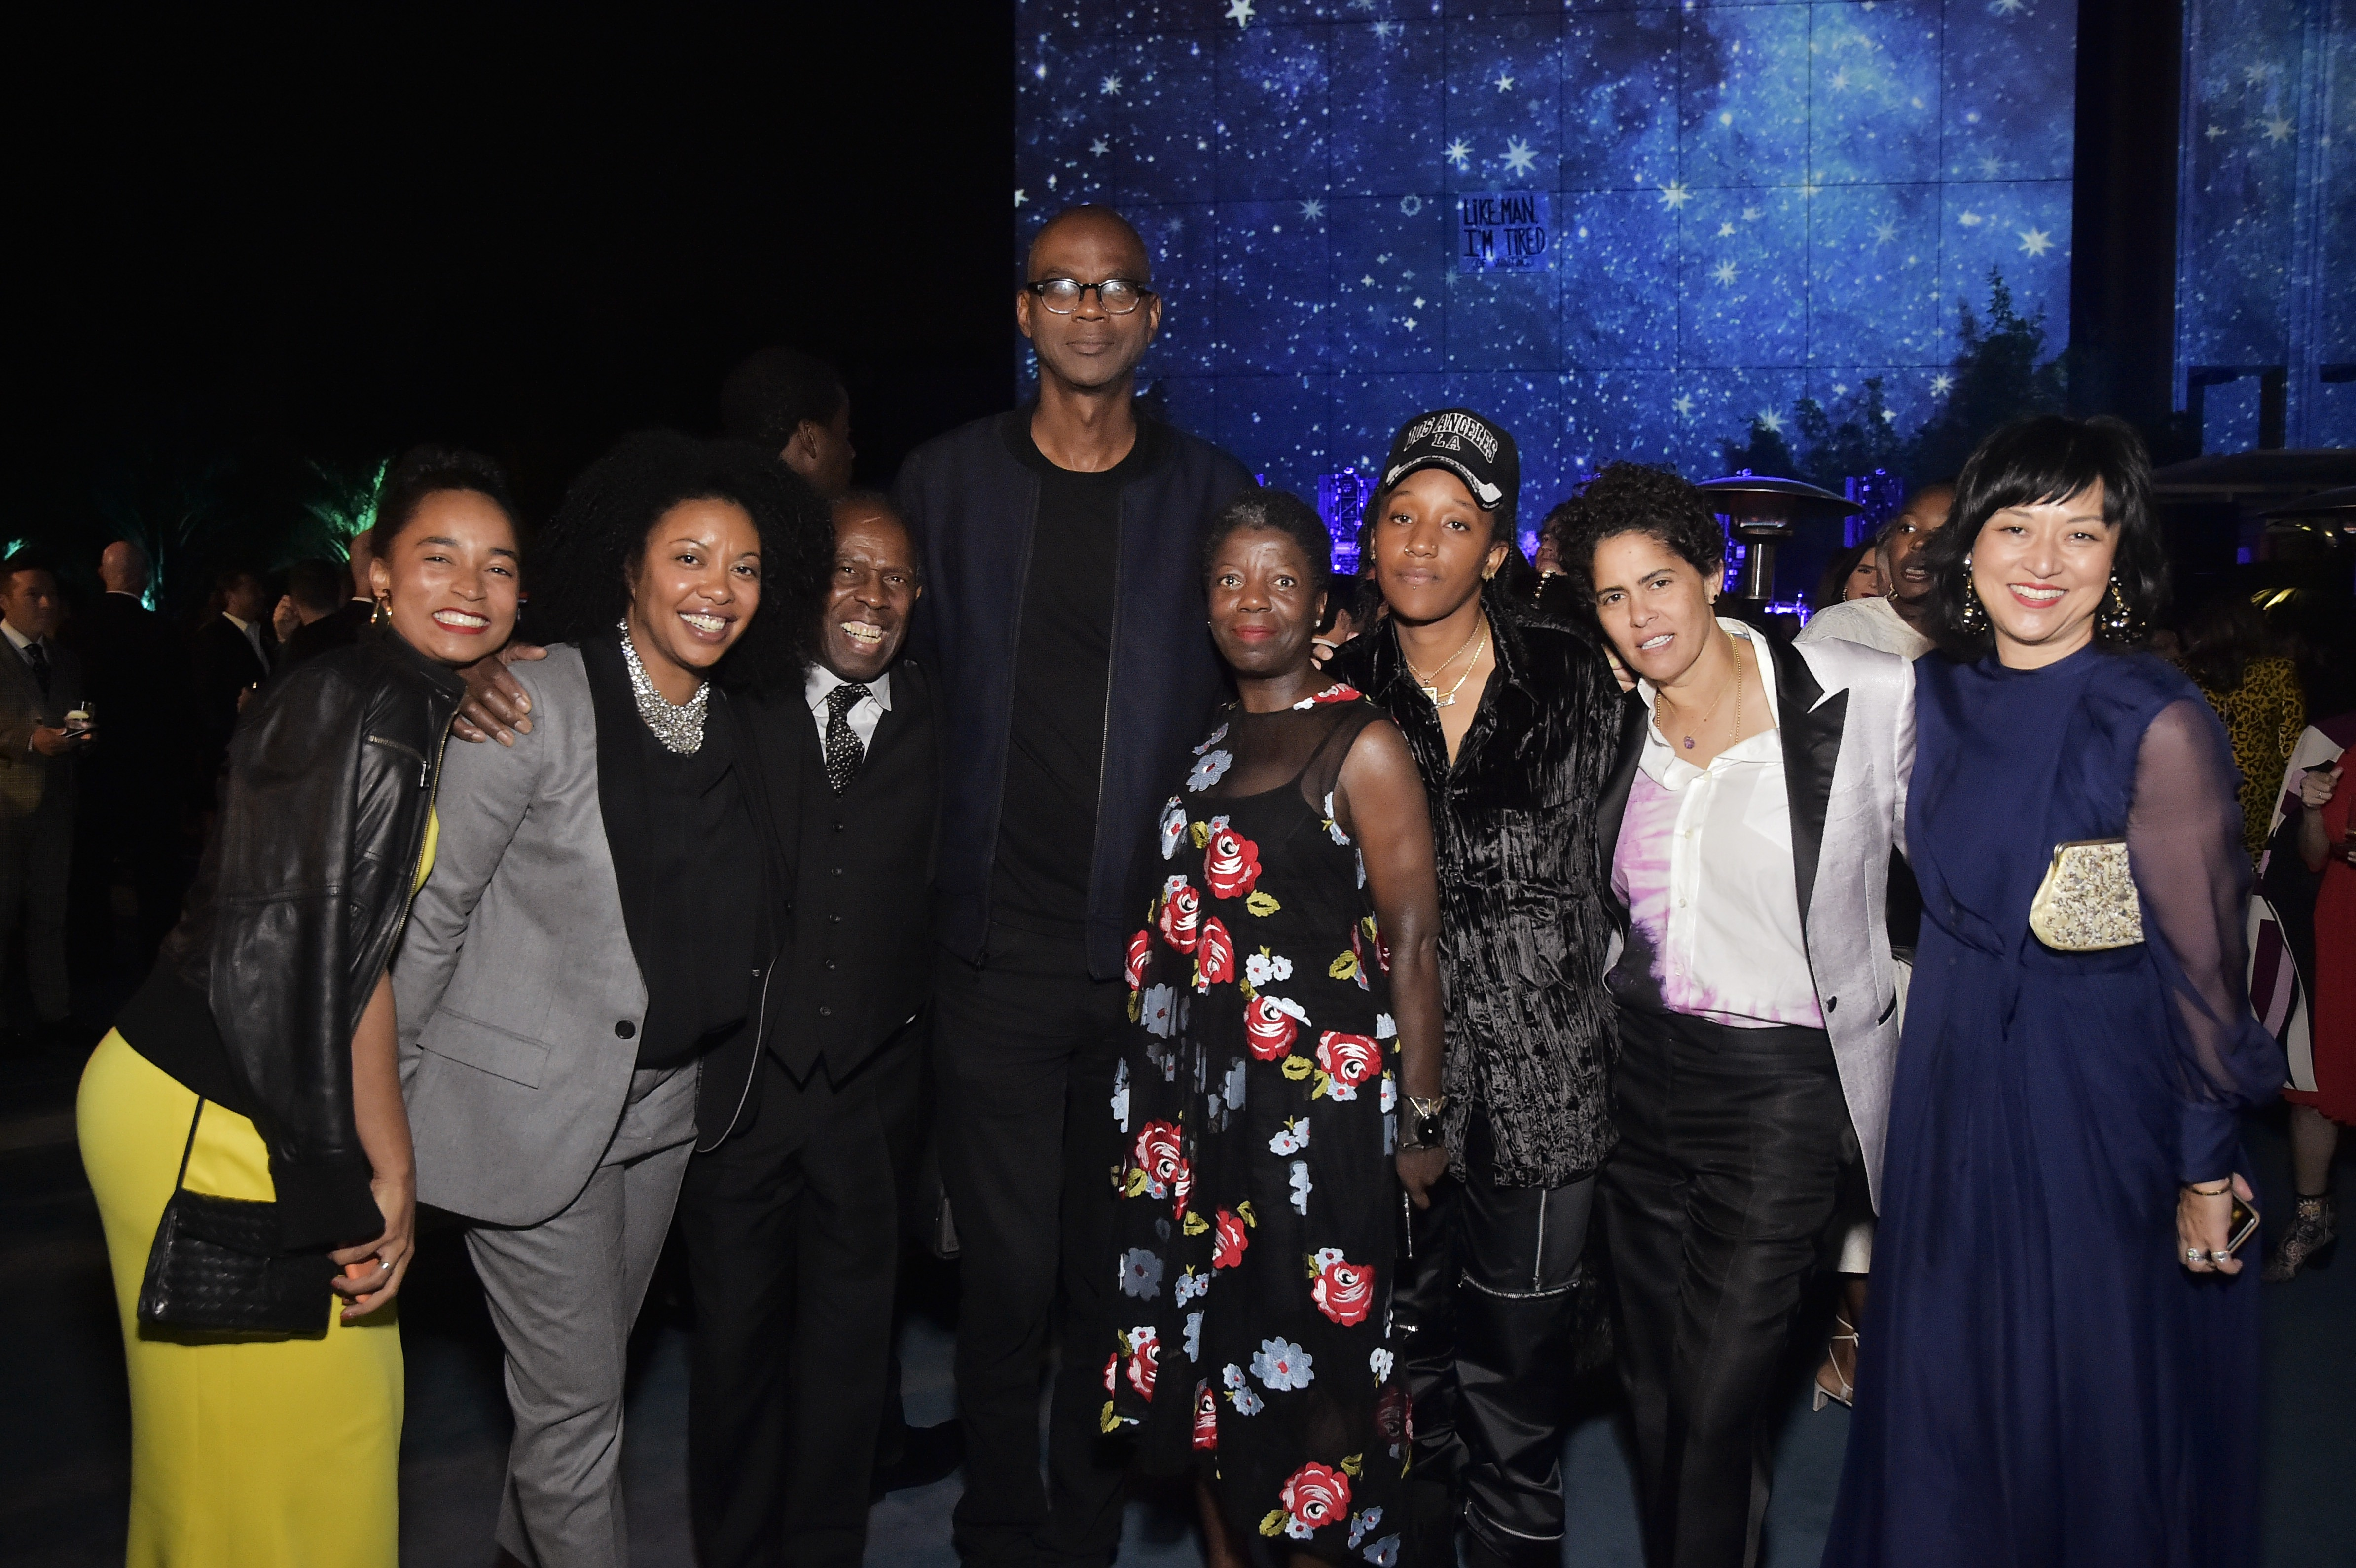 Rujeko Hockley, Adrienne Edwards, Charles Gaines, Mark Bradford, Thelma Golden, Lauren Halsey, Julie Mehretu, and LACMA curator Christine Y. Kim, photo by Stefanie Keenan/Getty Images for LACMA